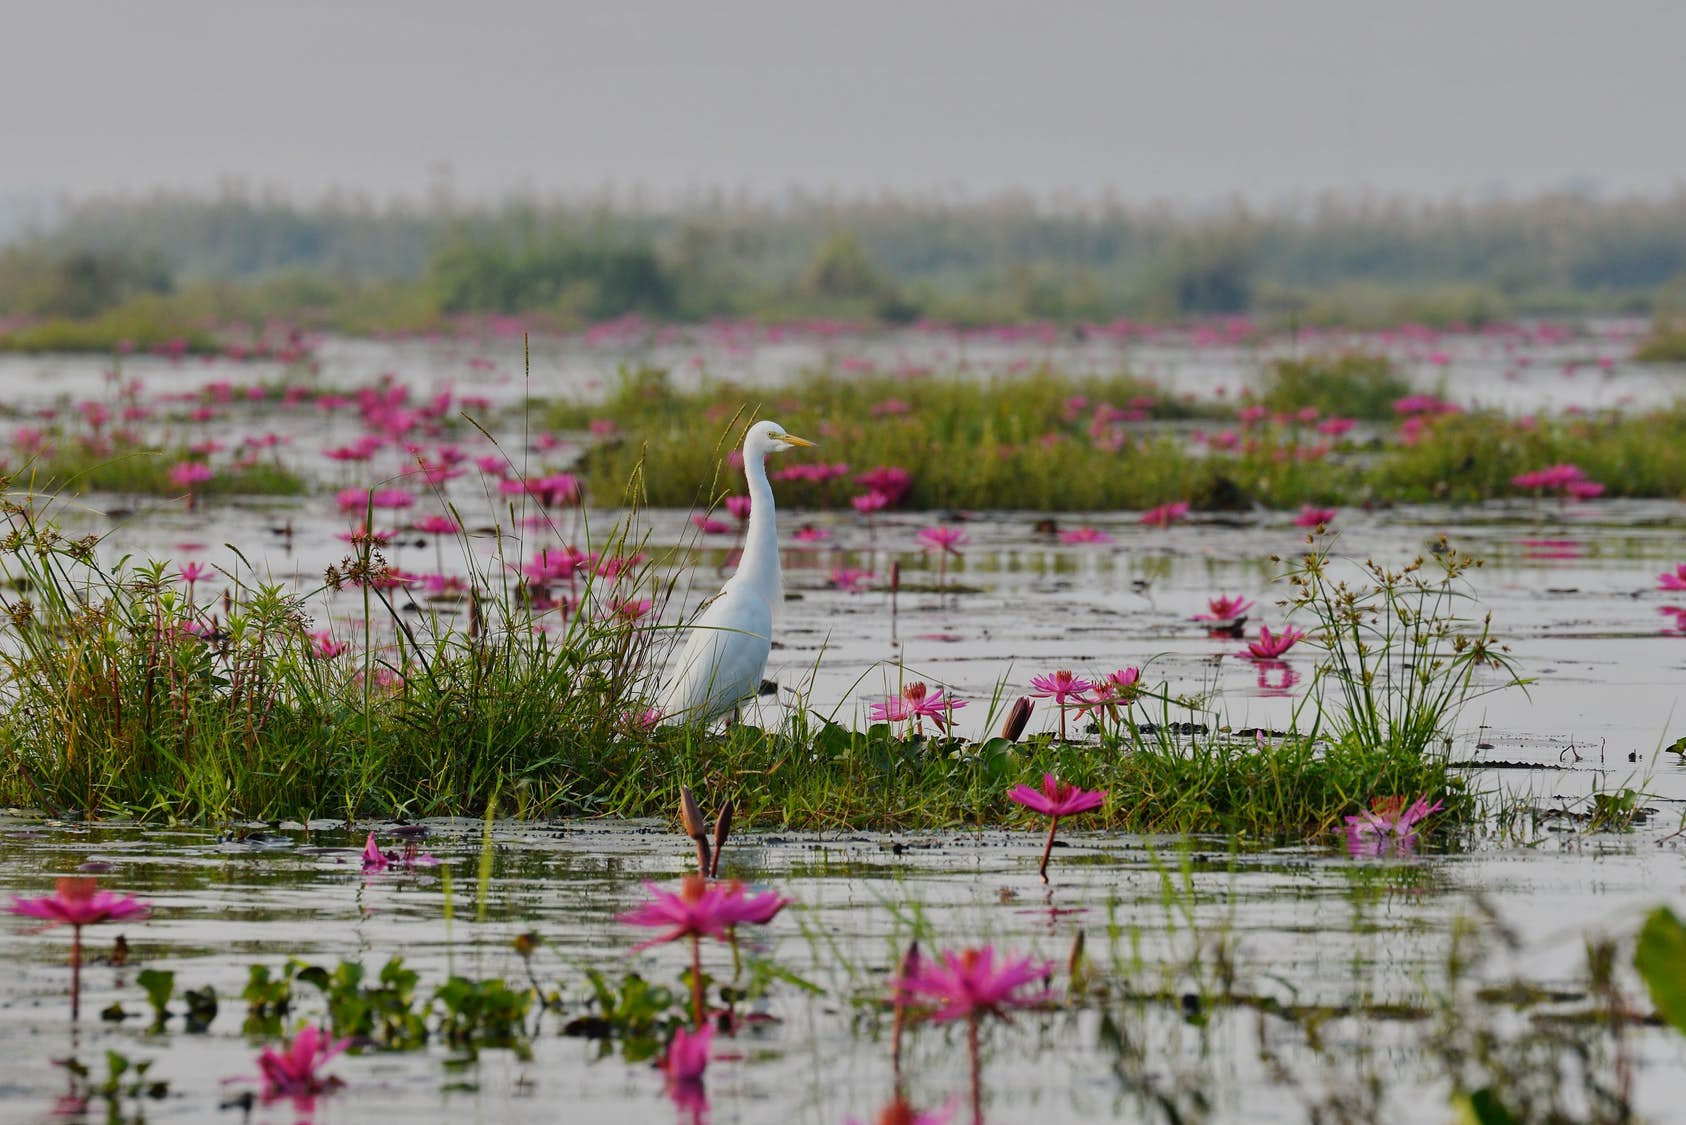 Odisha's Chilika Lake is an ecotourism hotbed